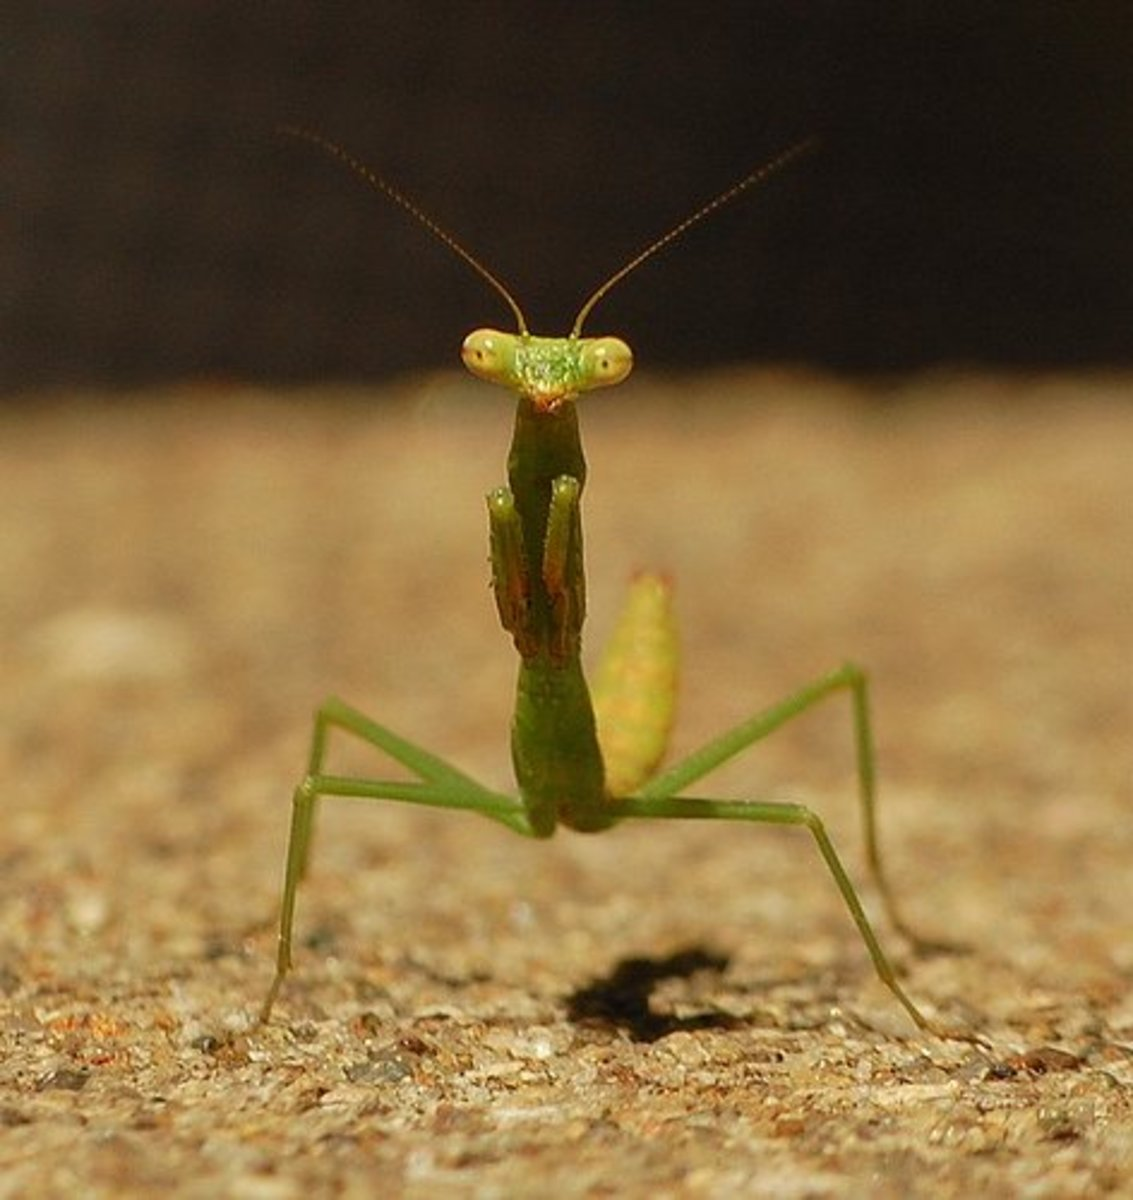 Photo by jenn_jenn. The upward curve to this mantis's body suggests that he is nervous.